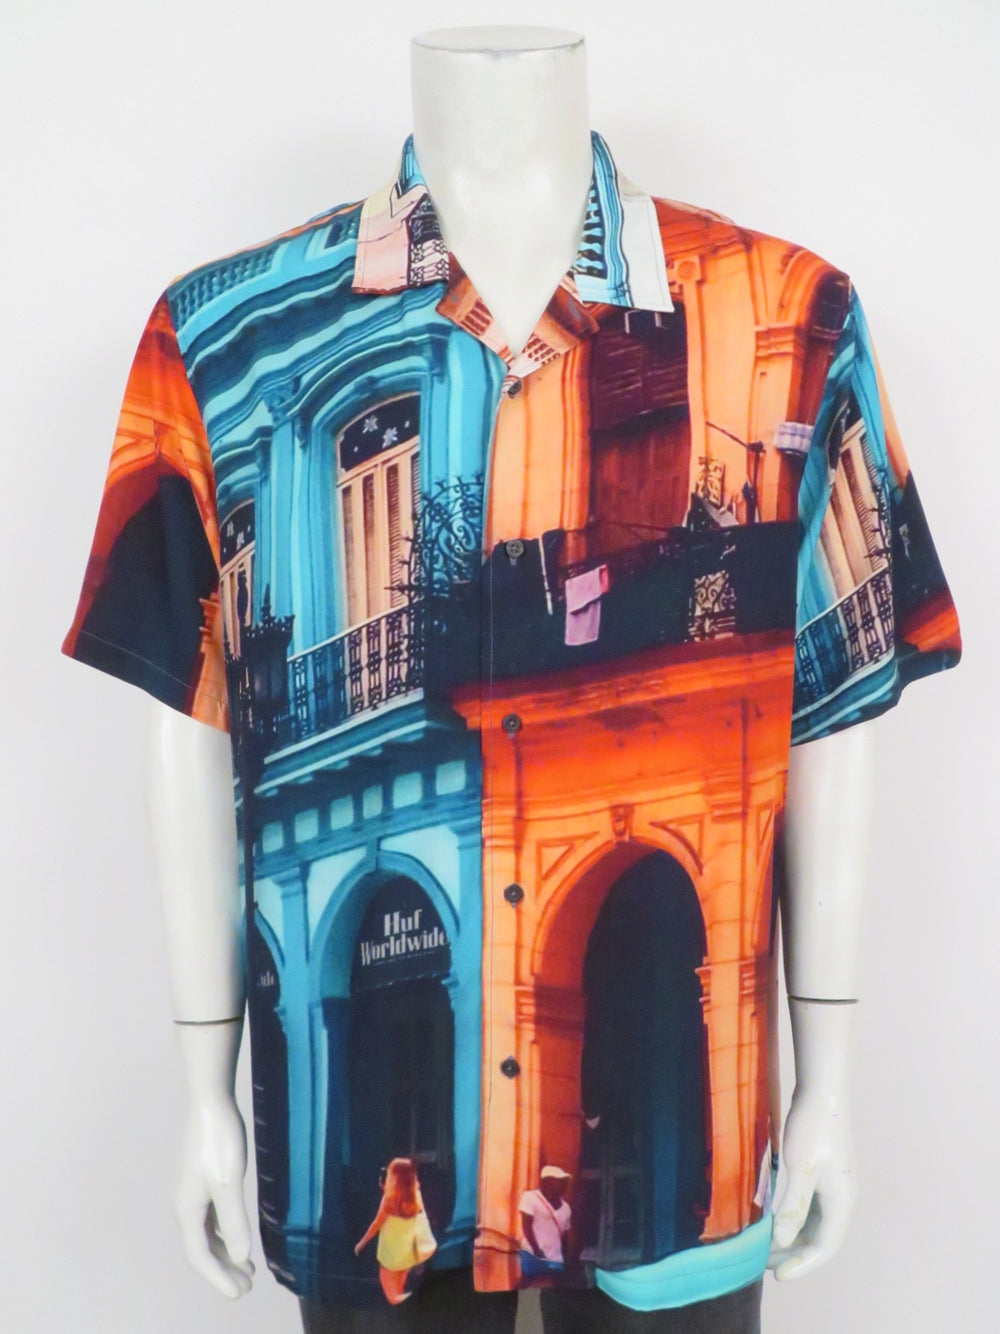 huf 'havana resort' short sleeve multicolor shirt. features realistic all-over print of downtown havana and stash pocket at inner neck. breezy cut with convertible collar. currently retailing for $70.